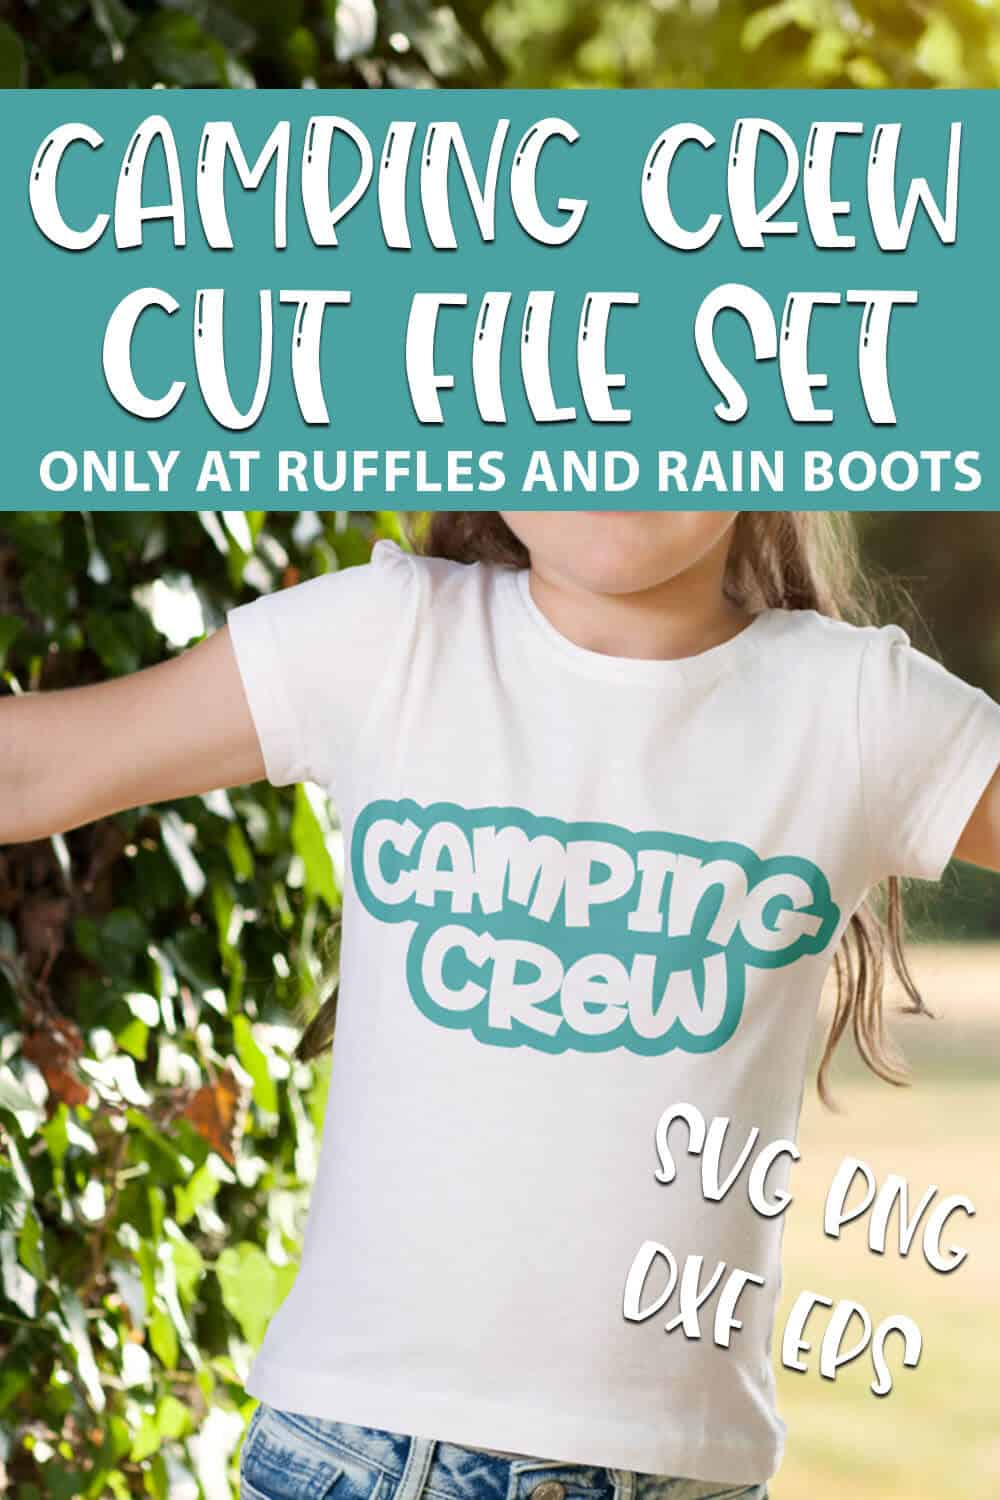 camping crew and let's go camping svg sets for cricut or silhouette with text which reads camping crew cut file set svg png dxf eps